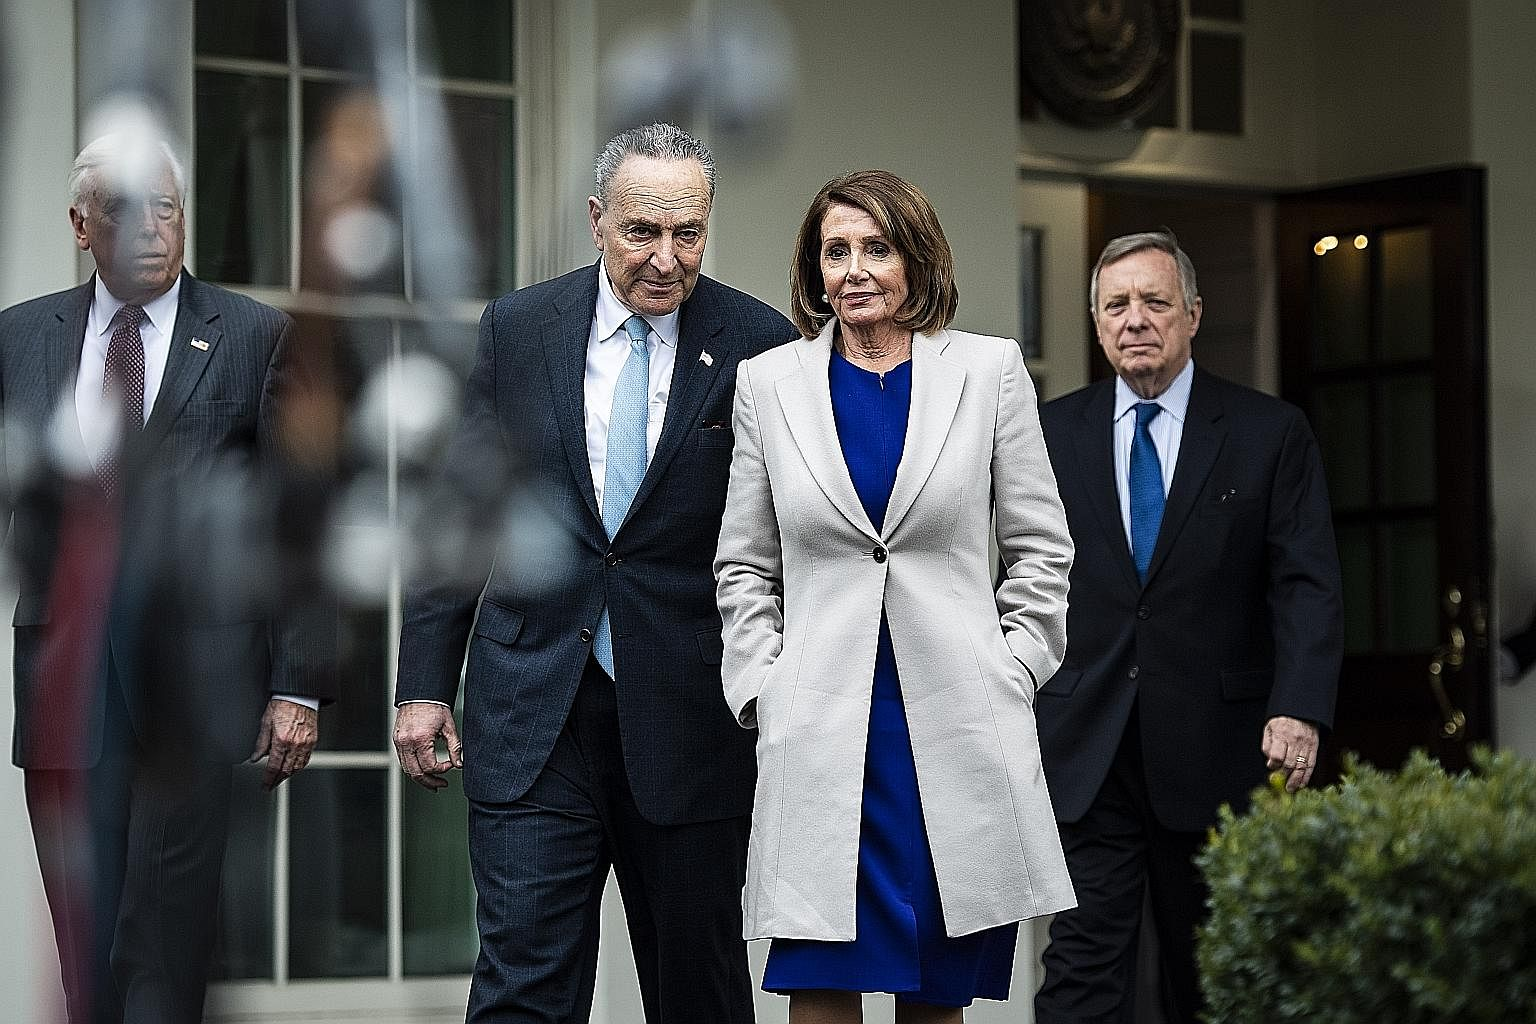 (From left) House Majority Leader Steny Hoyer, Senator Charles Schumer, House Speaker Nancy Pelosi and Senator Richard Durbin leaving a meeting with President Donald Trump on Friday. Democrats now have real power to subject Mr Trump to a level of scr